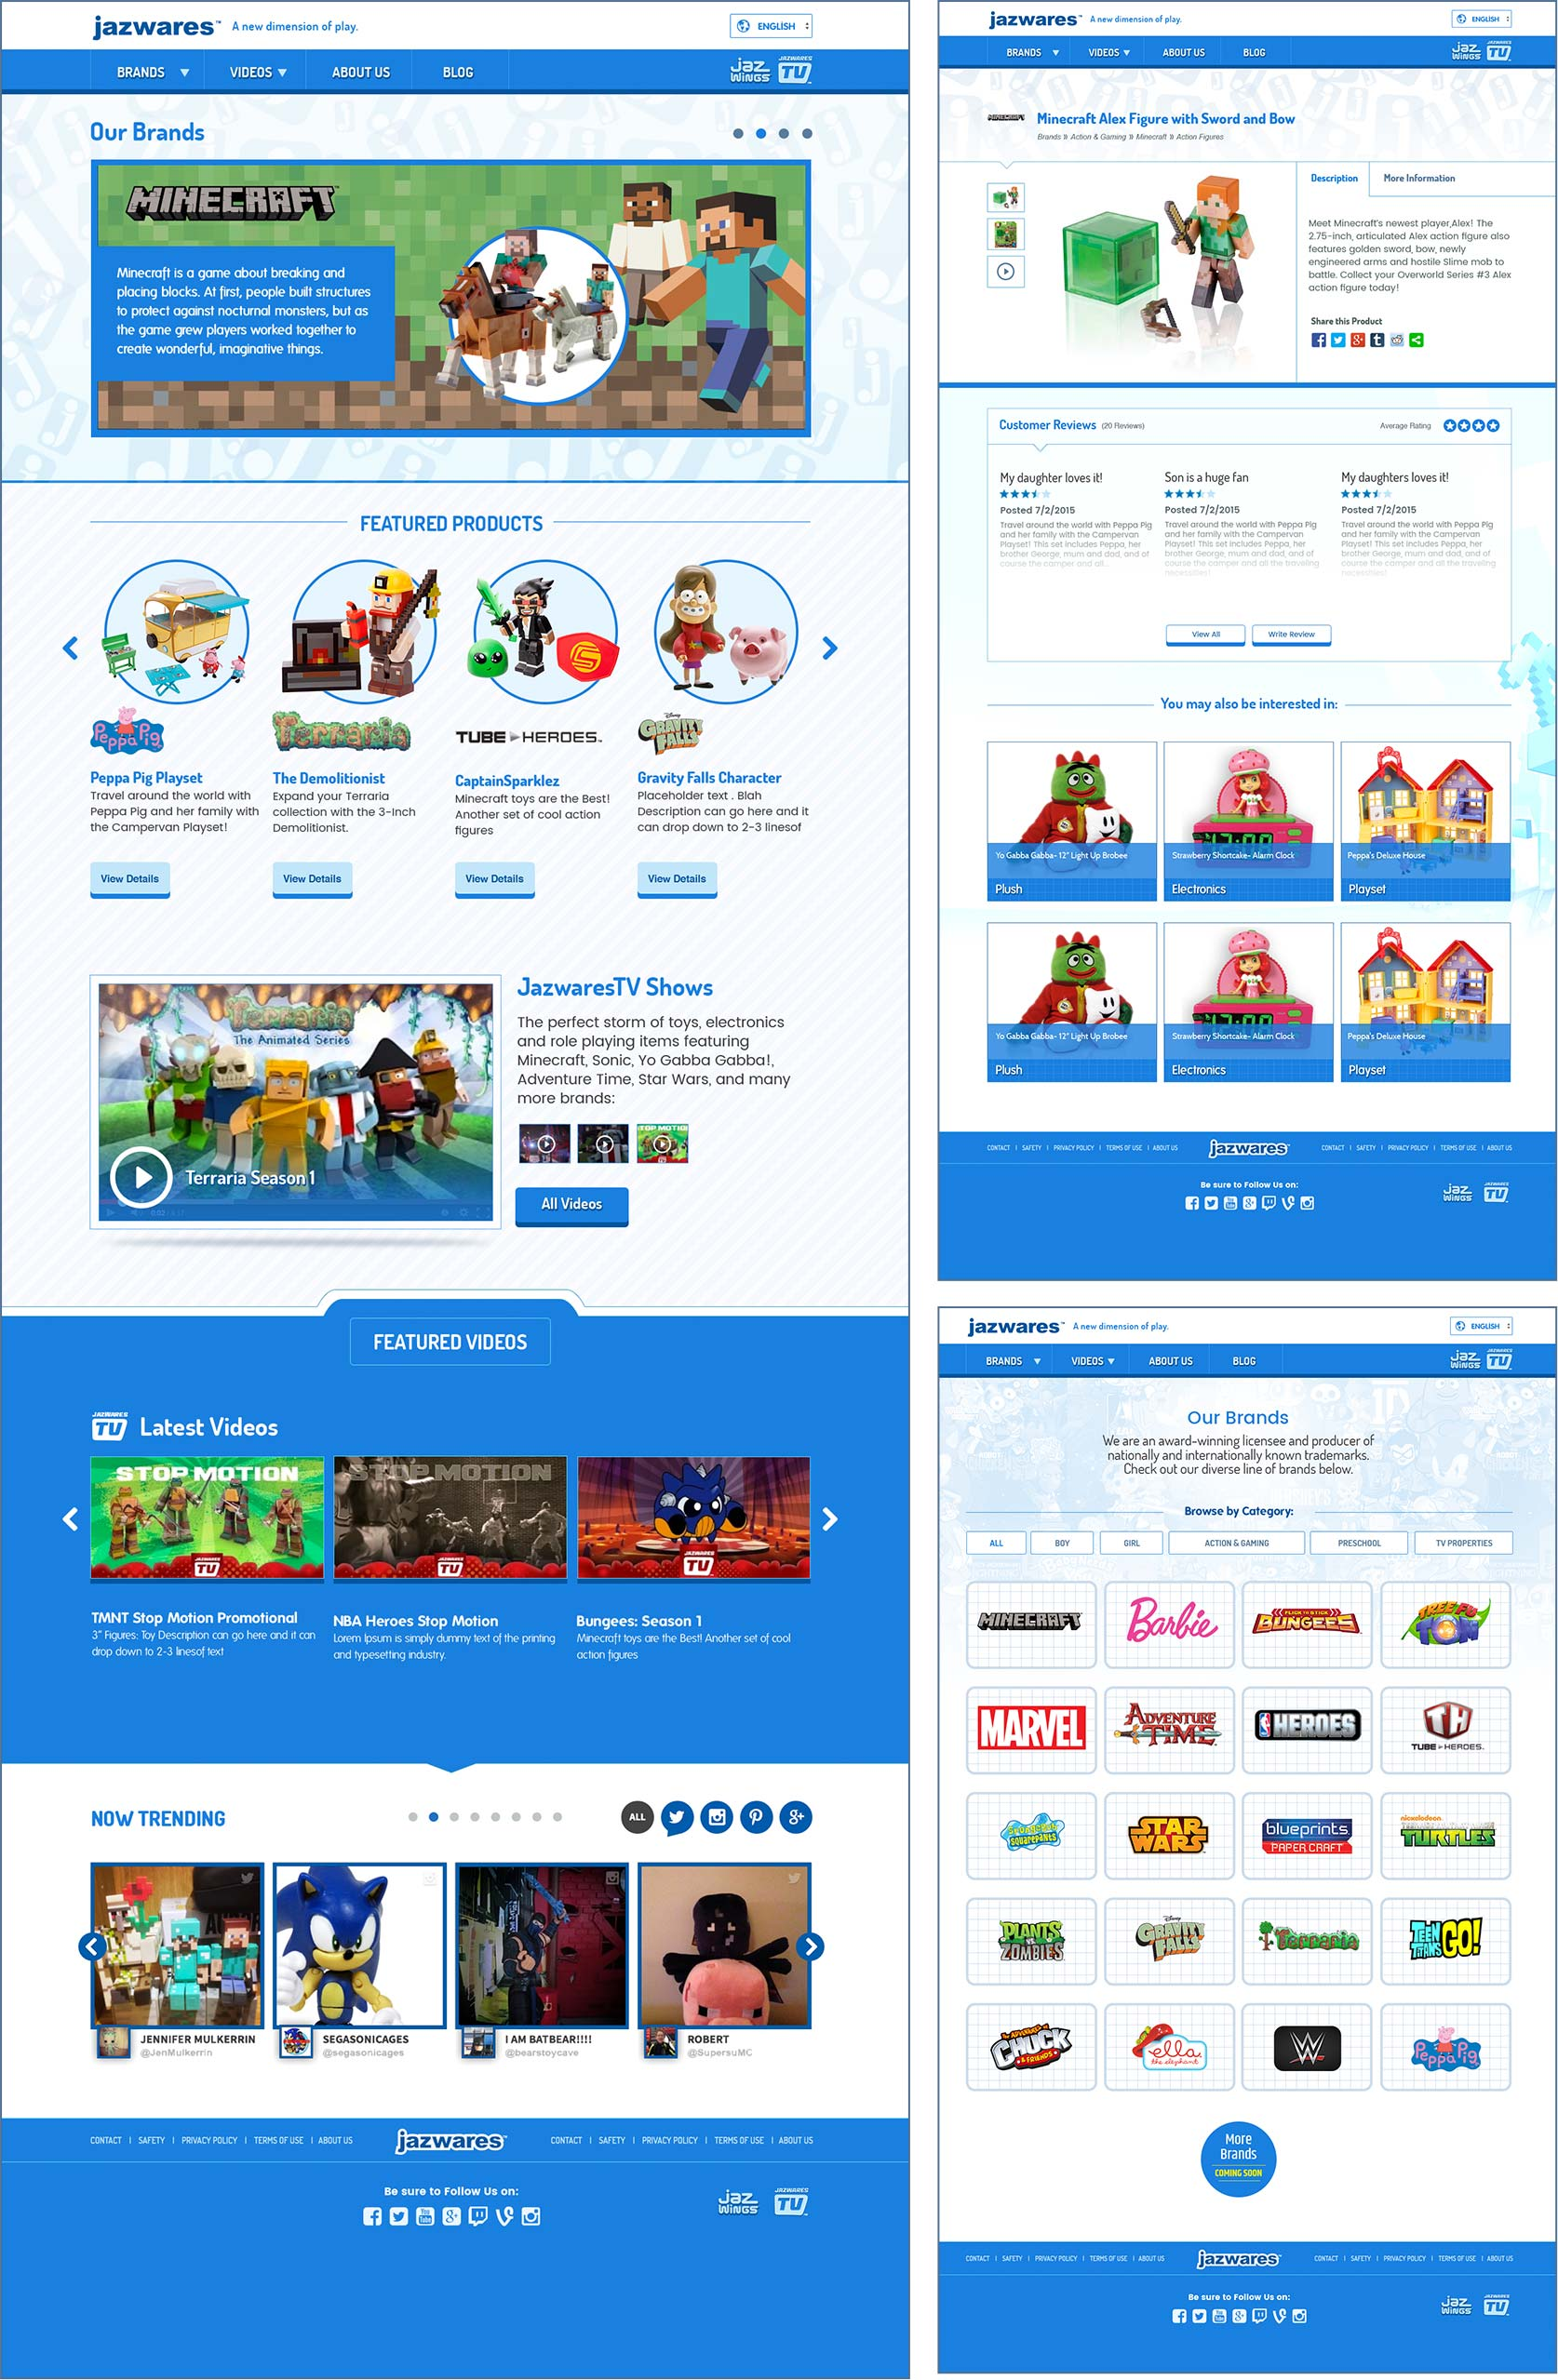 Jazwares website design